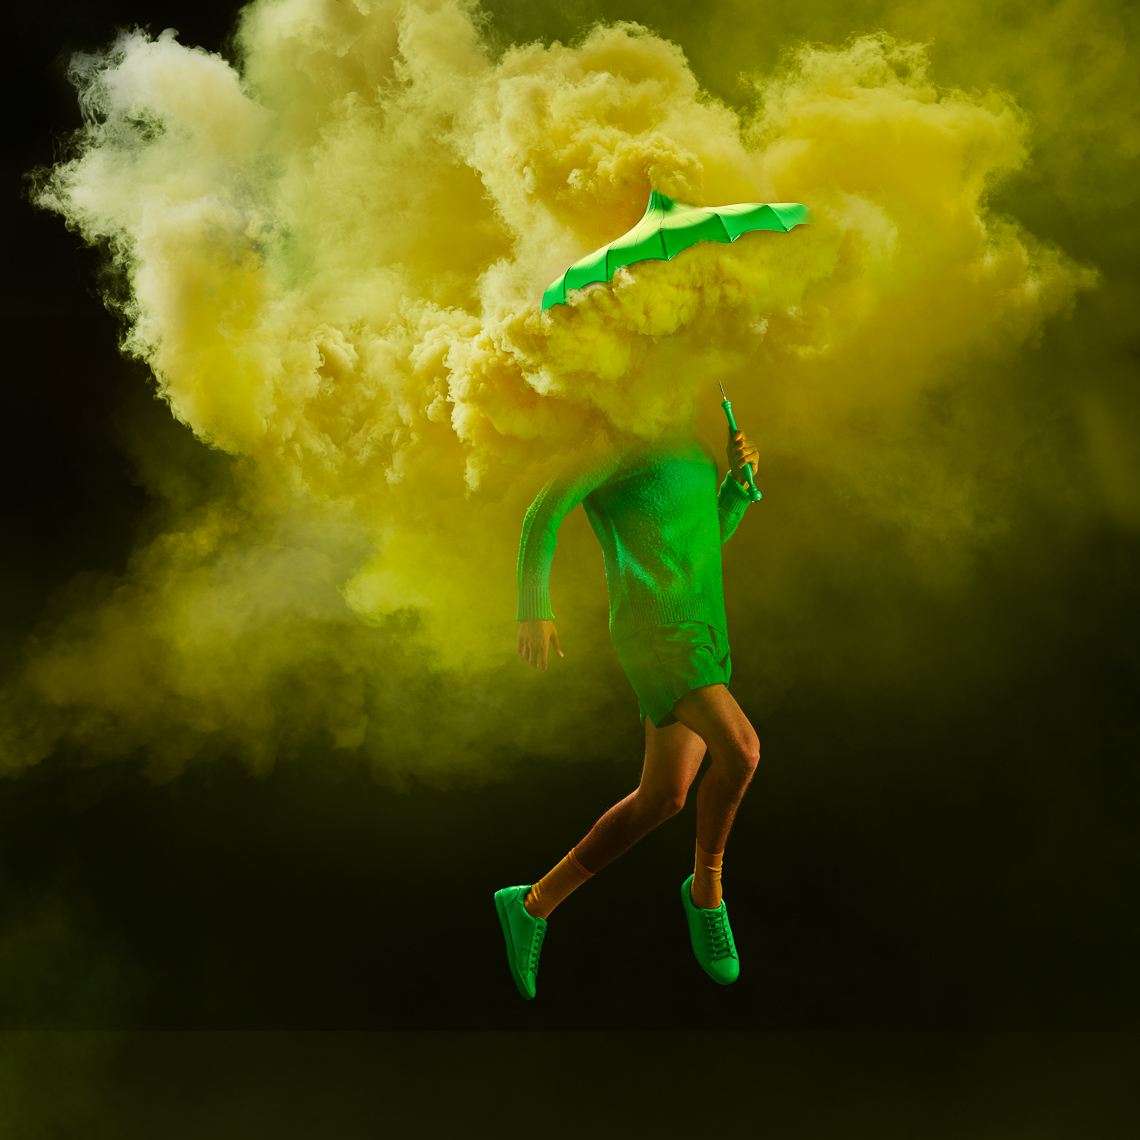 Tim_Tadder_Smoke_umbrellas_-6